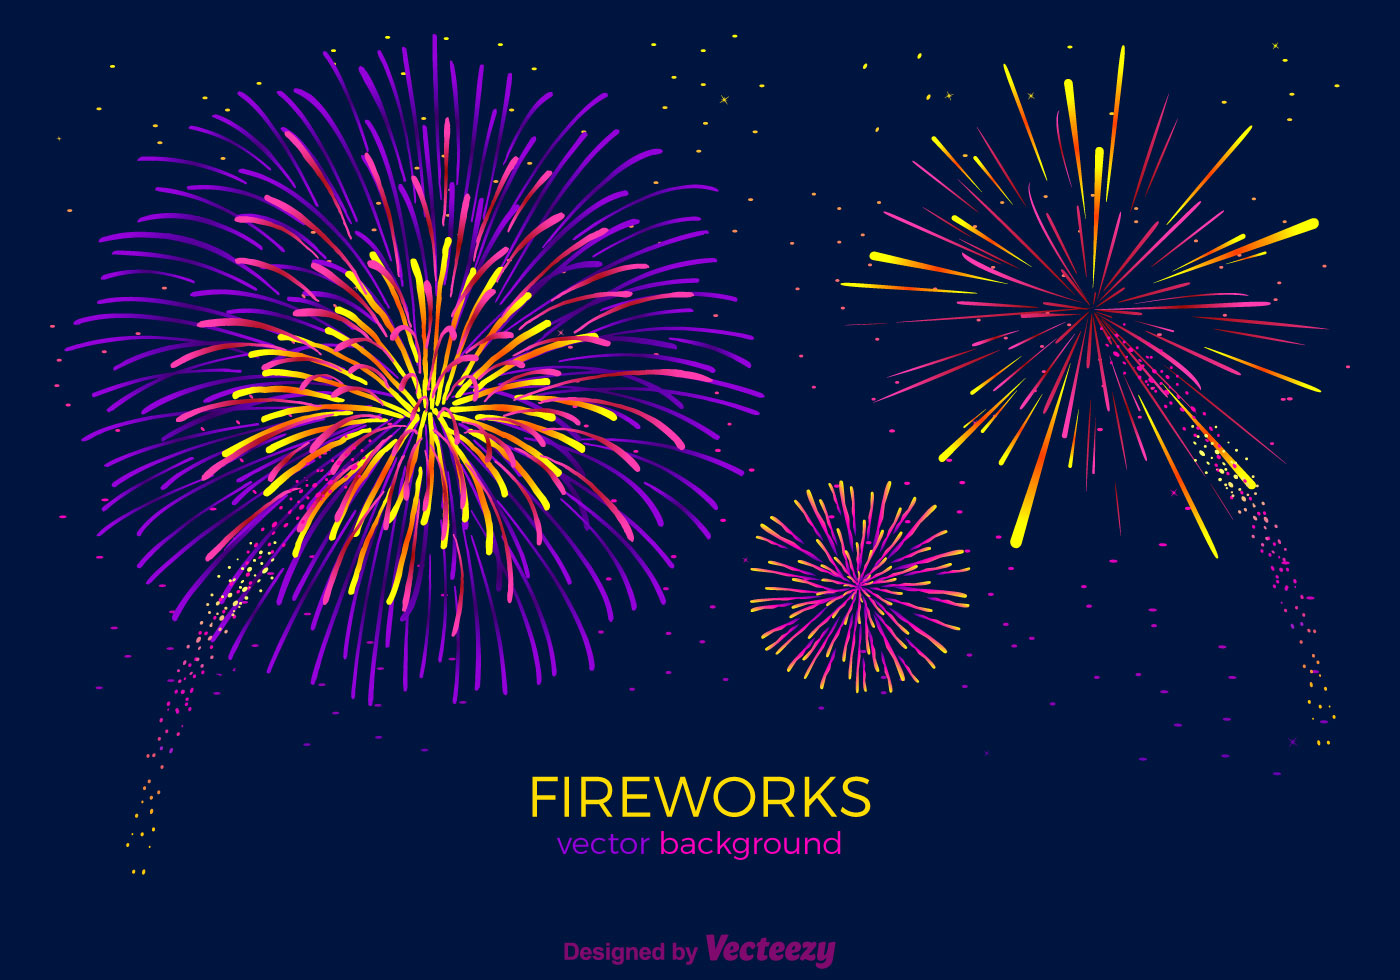 Free Fireworks Vector Background - Download Free Vector Art, Stock ...